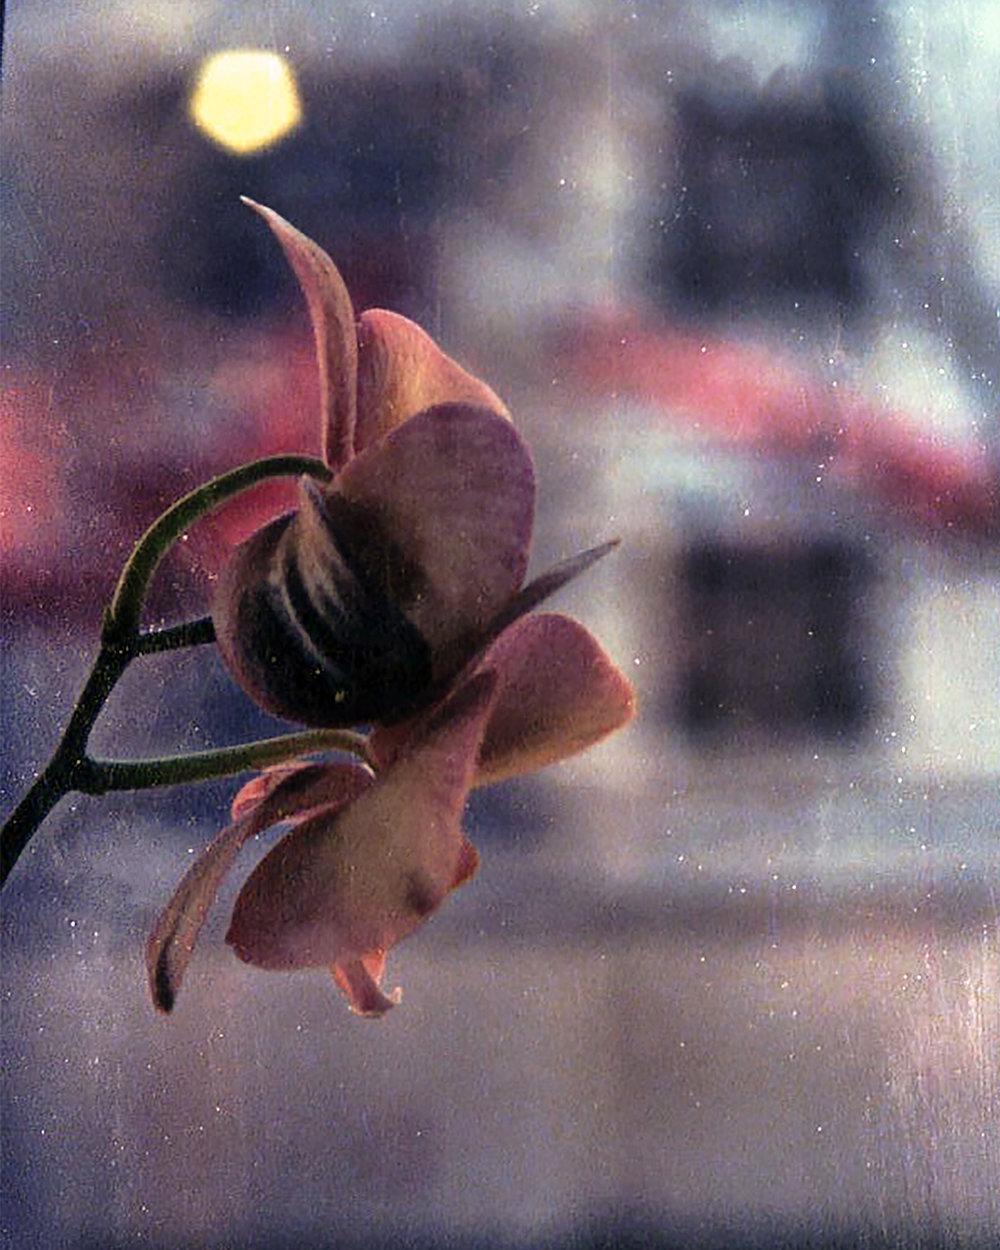 flower on film.jpg